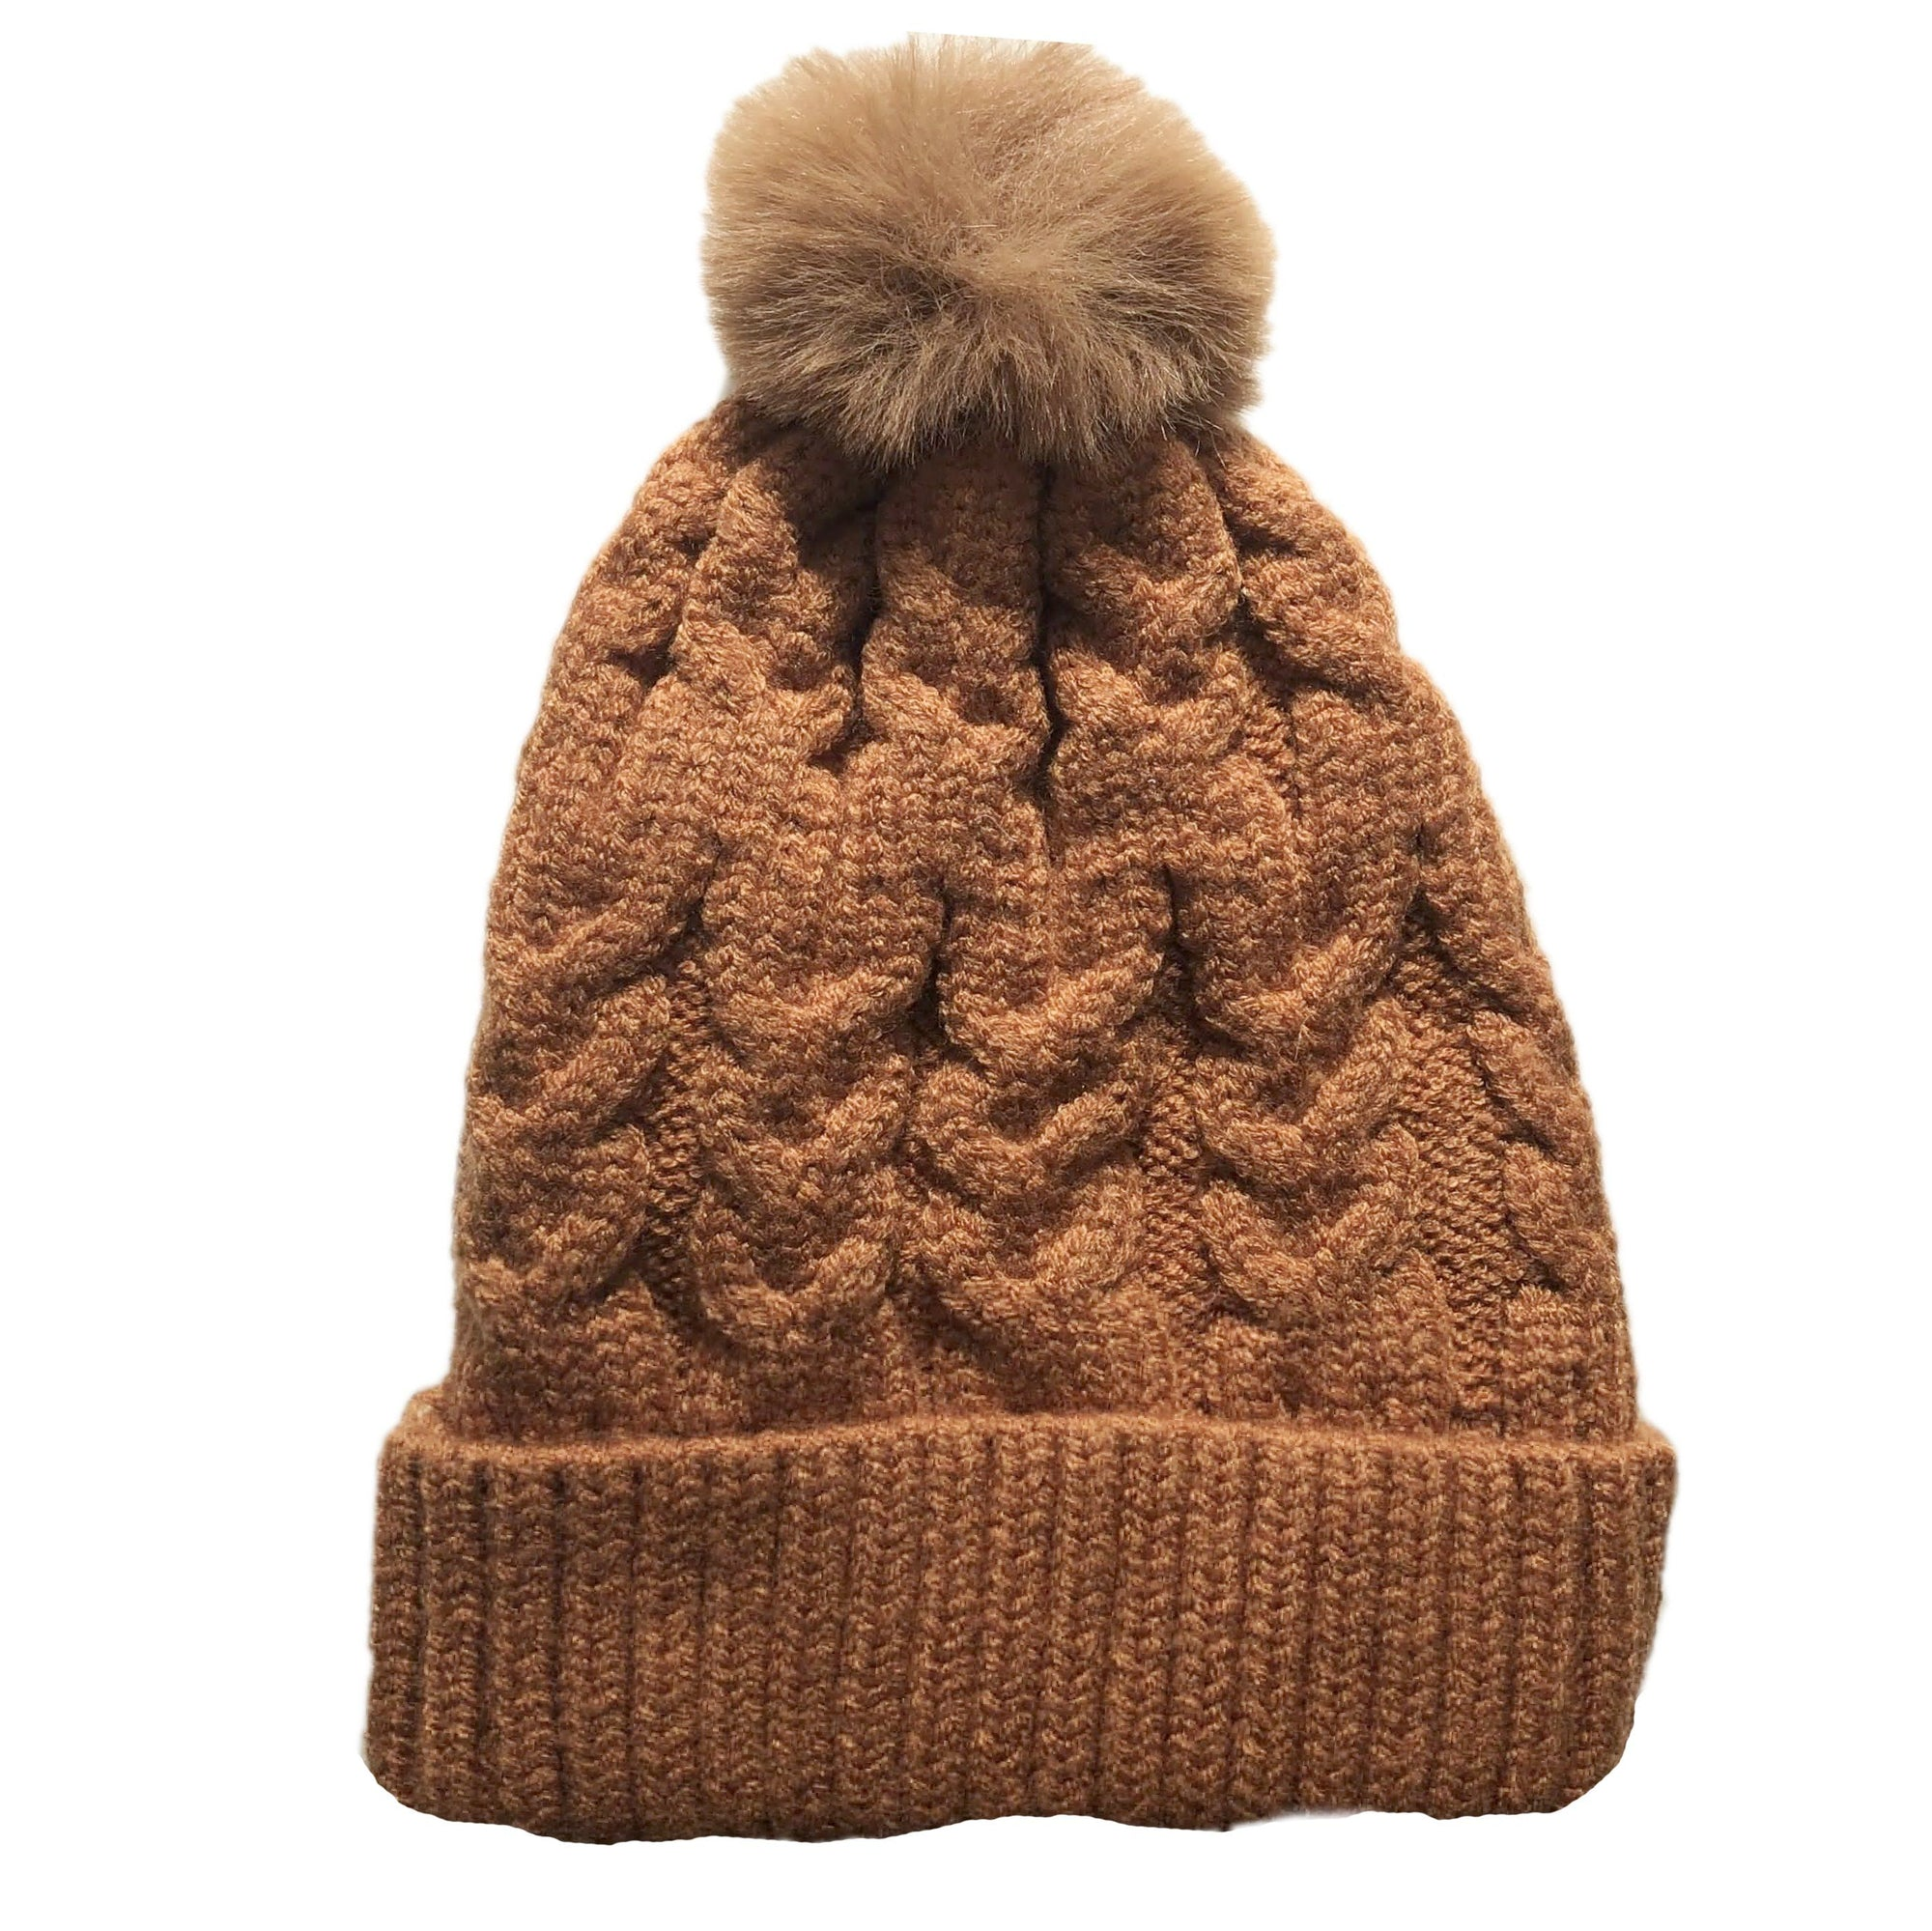 Single Pom Pom Beanie (Desert)